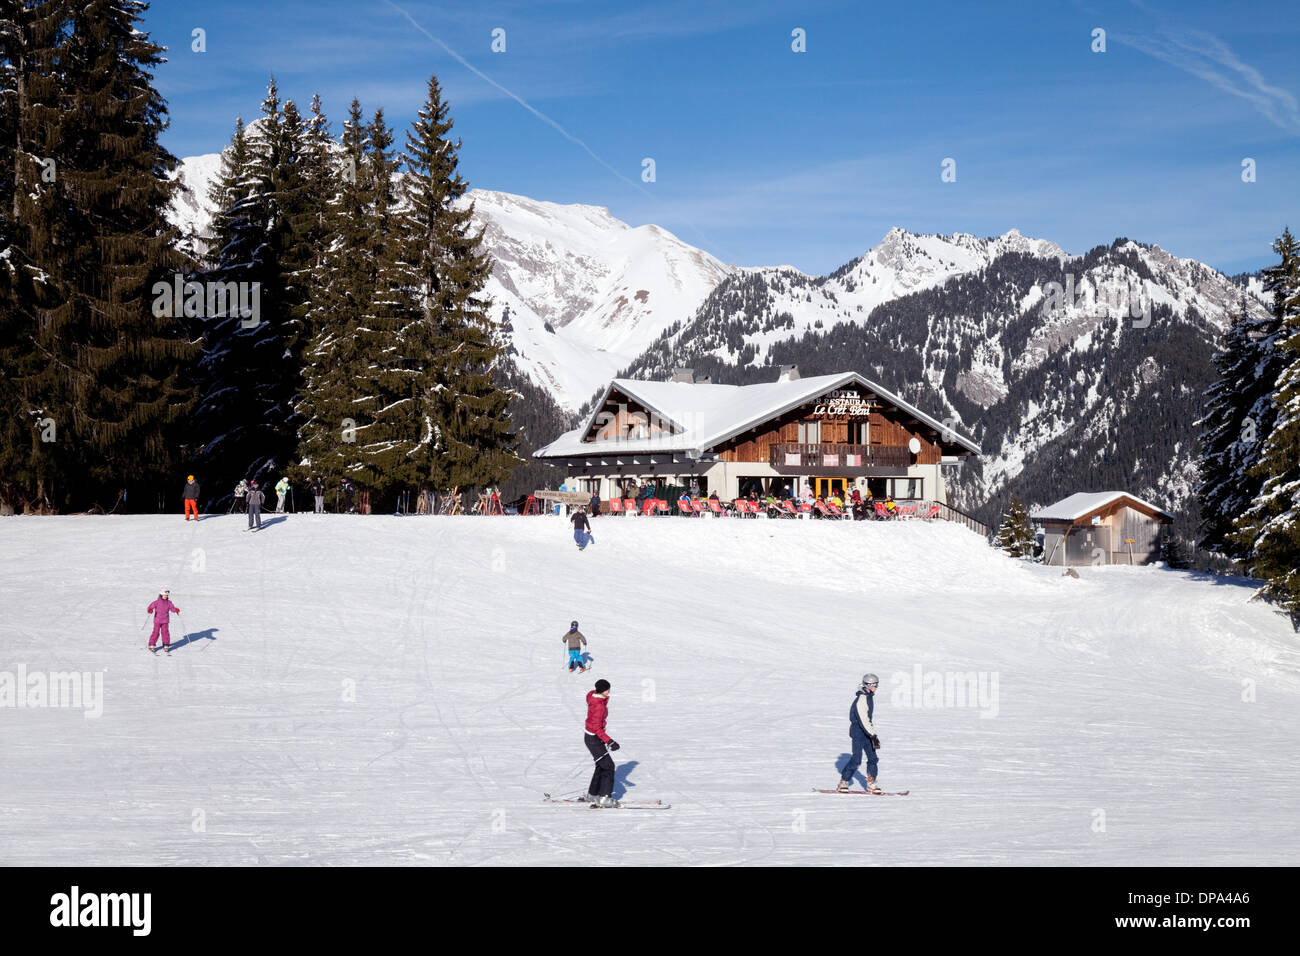 skiing alps cafe stock photos & skiing alps cafe stock images - alamy